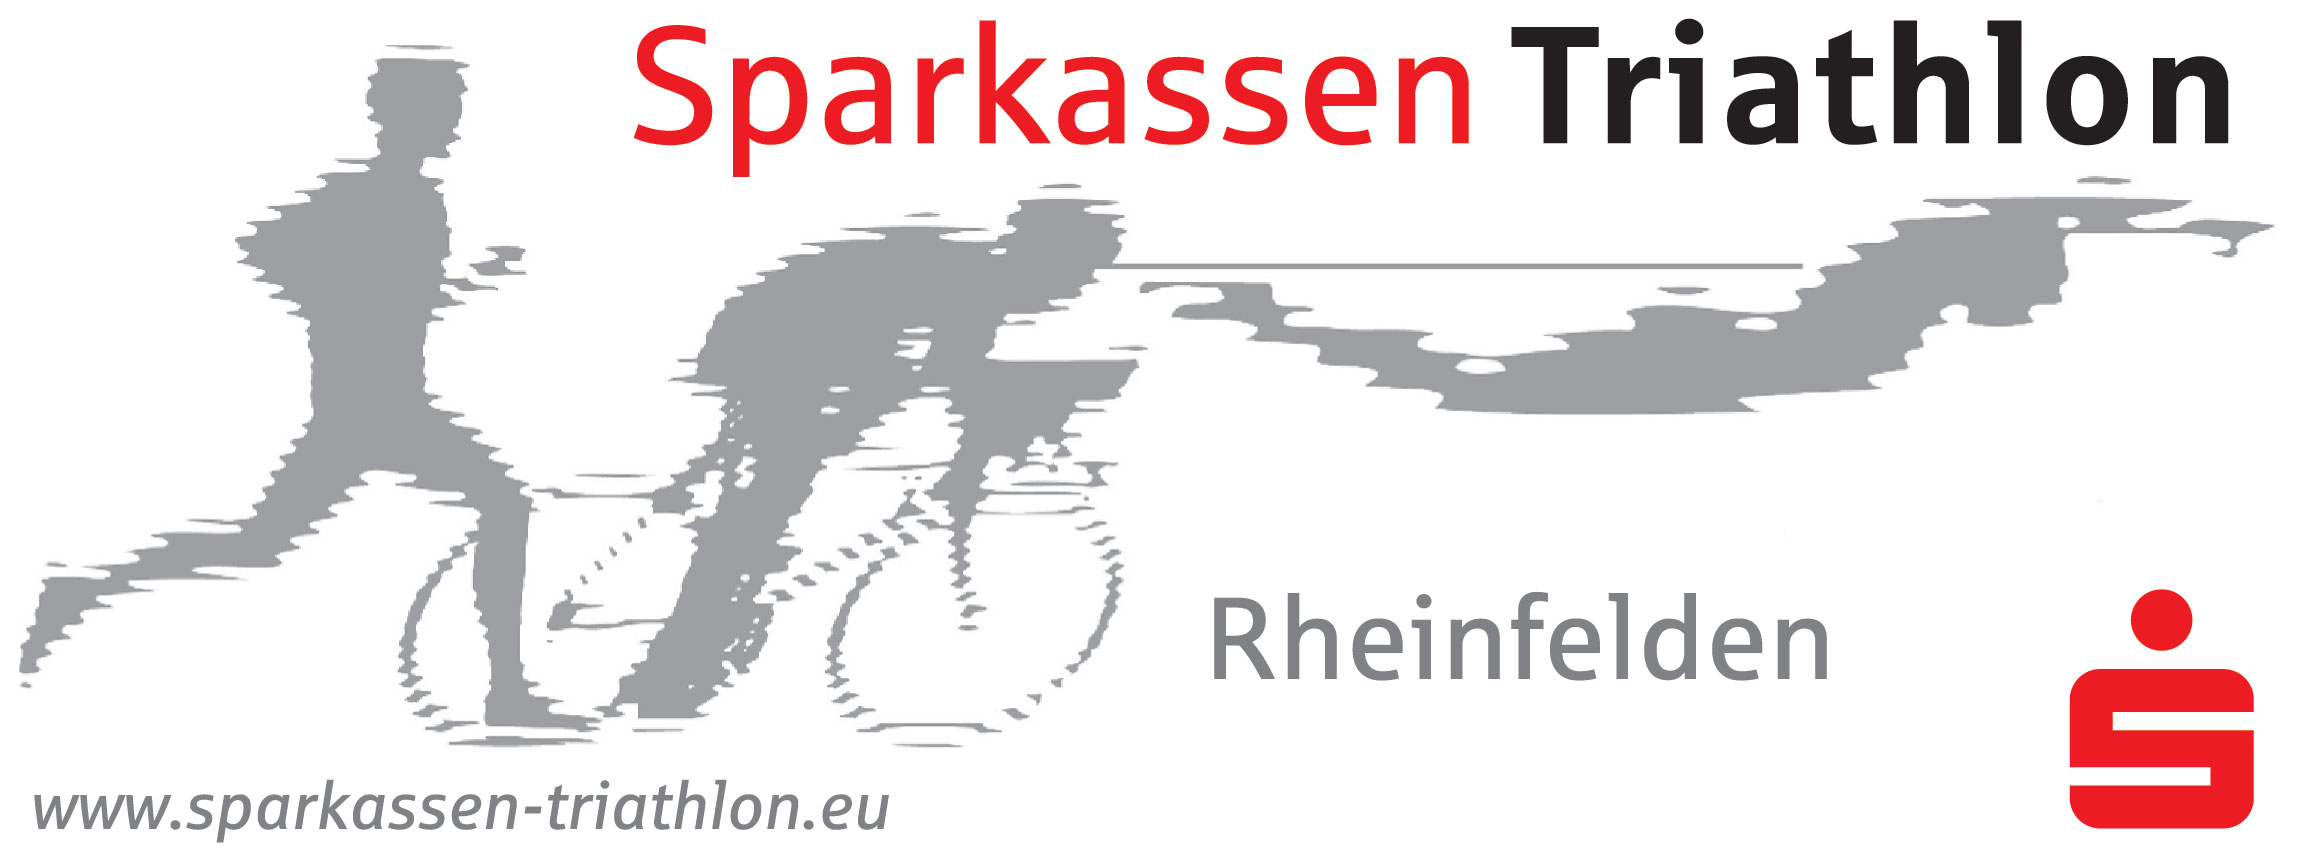 sparkassen-triathlon-logo